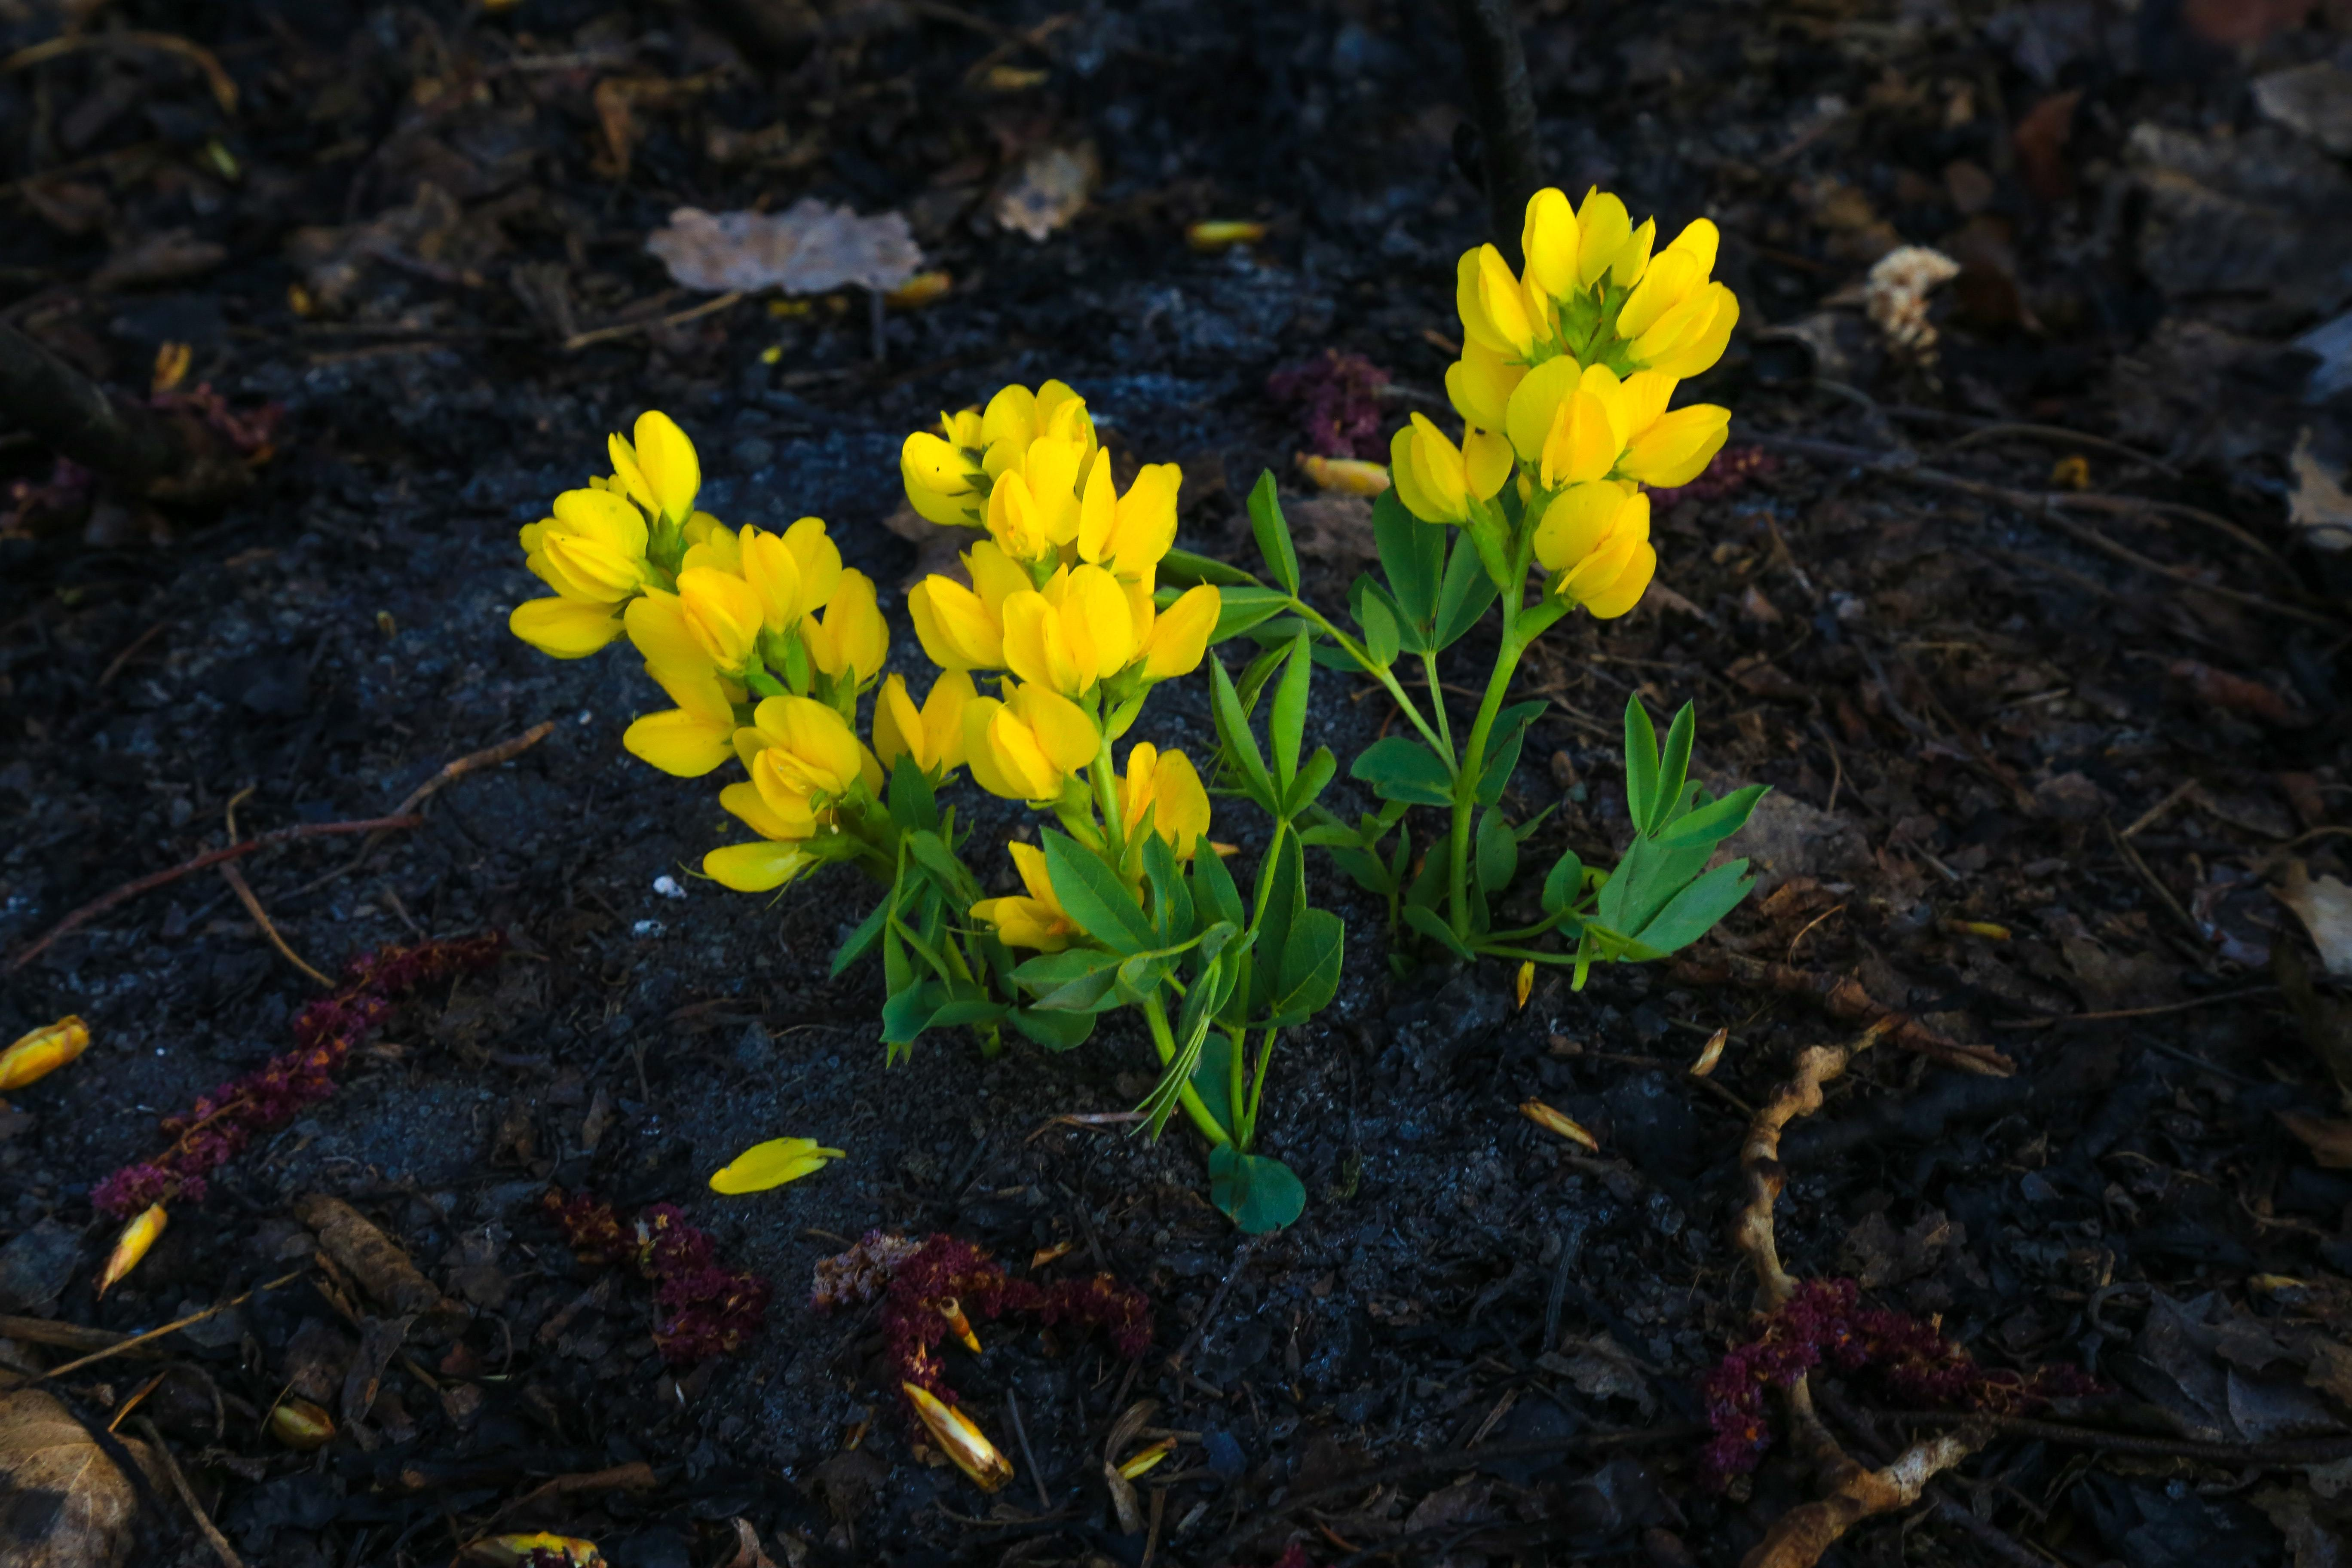 Yellow flowers growing in the soil